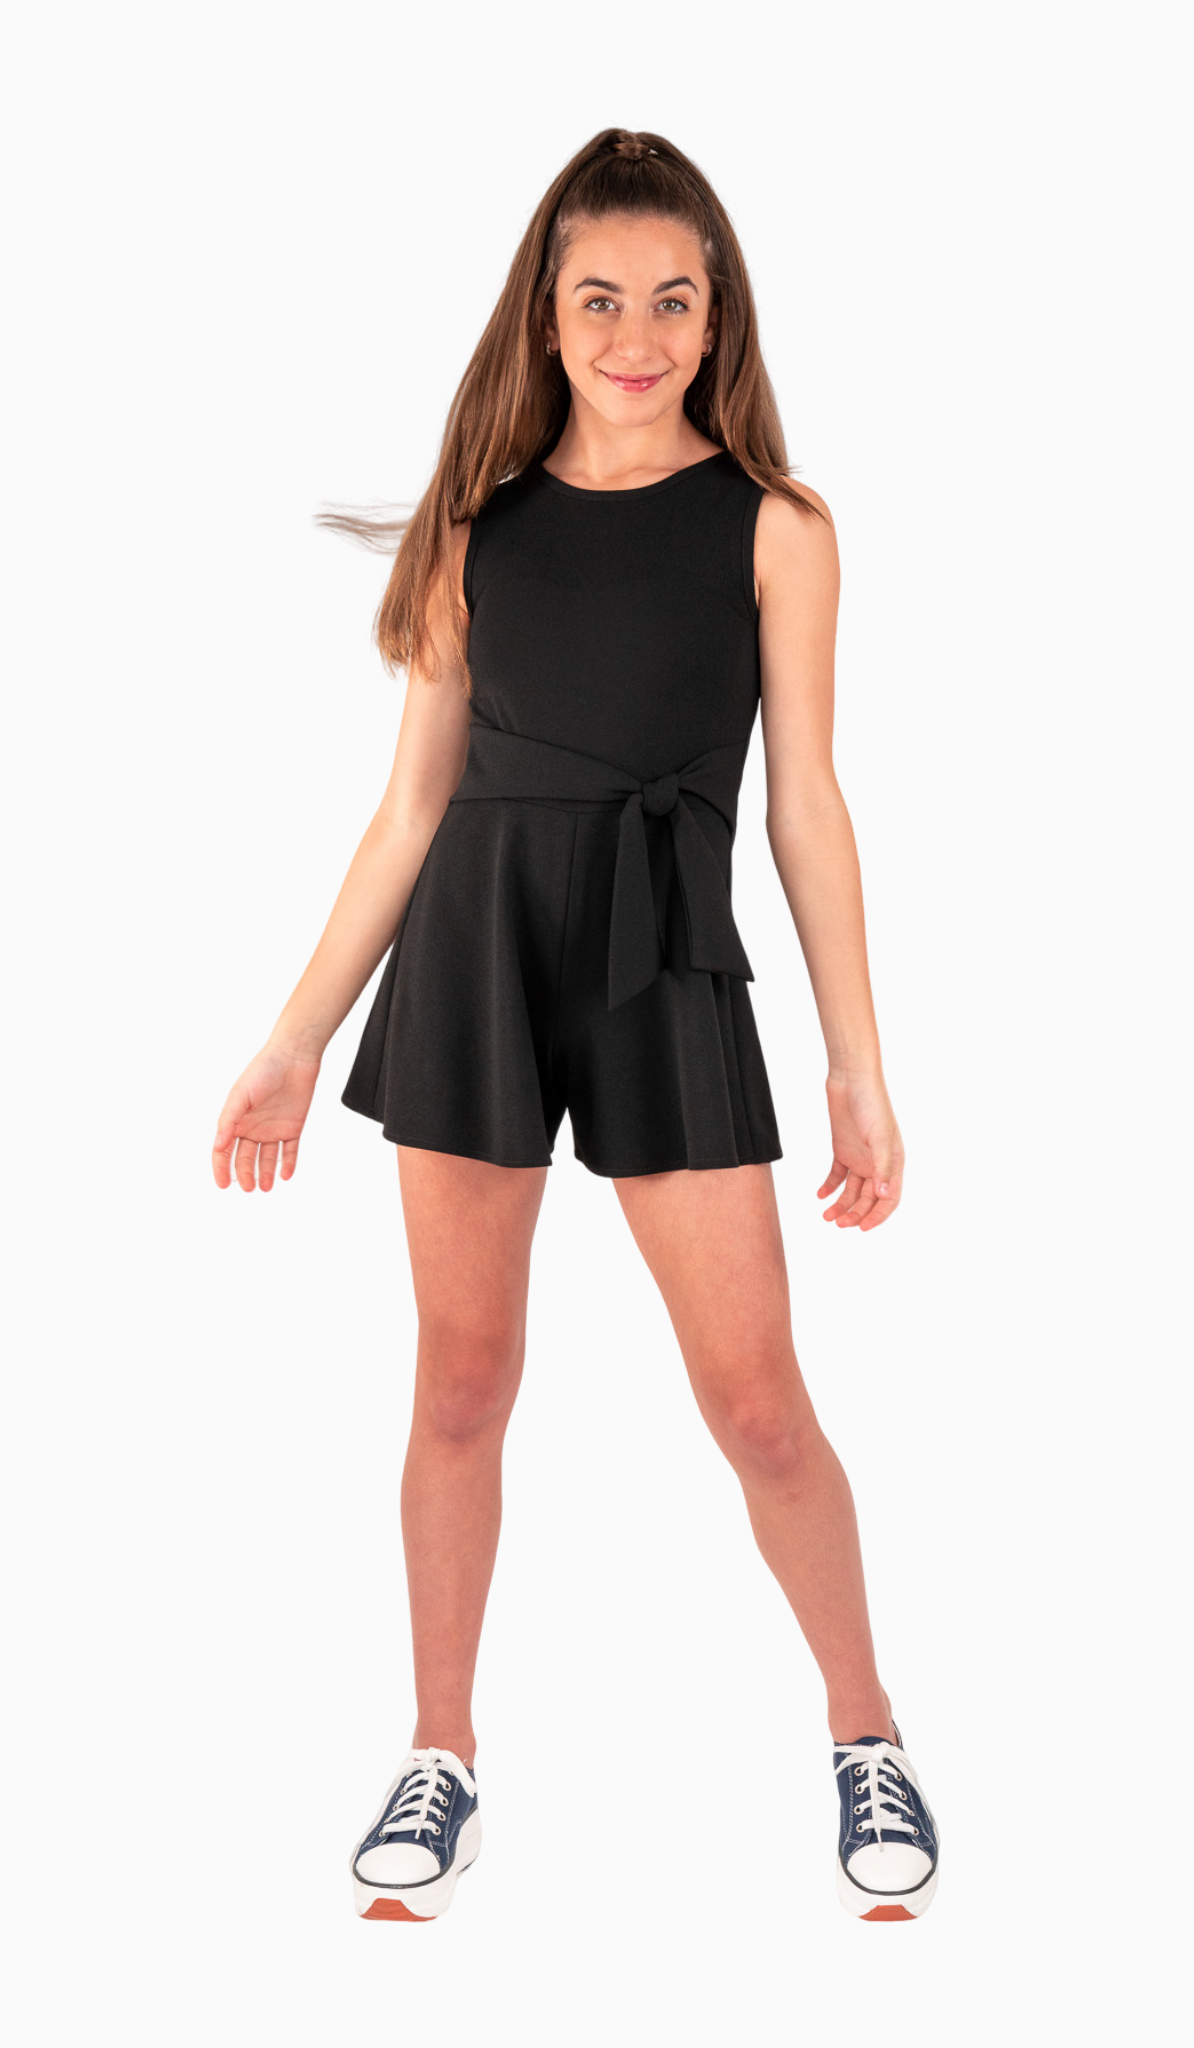 Sally Miller Side Tie Romper - Black stretch crepe knit romper with waist tie and zipper at back